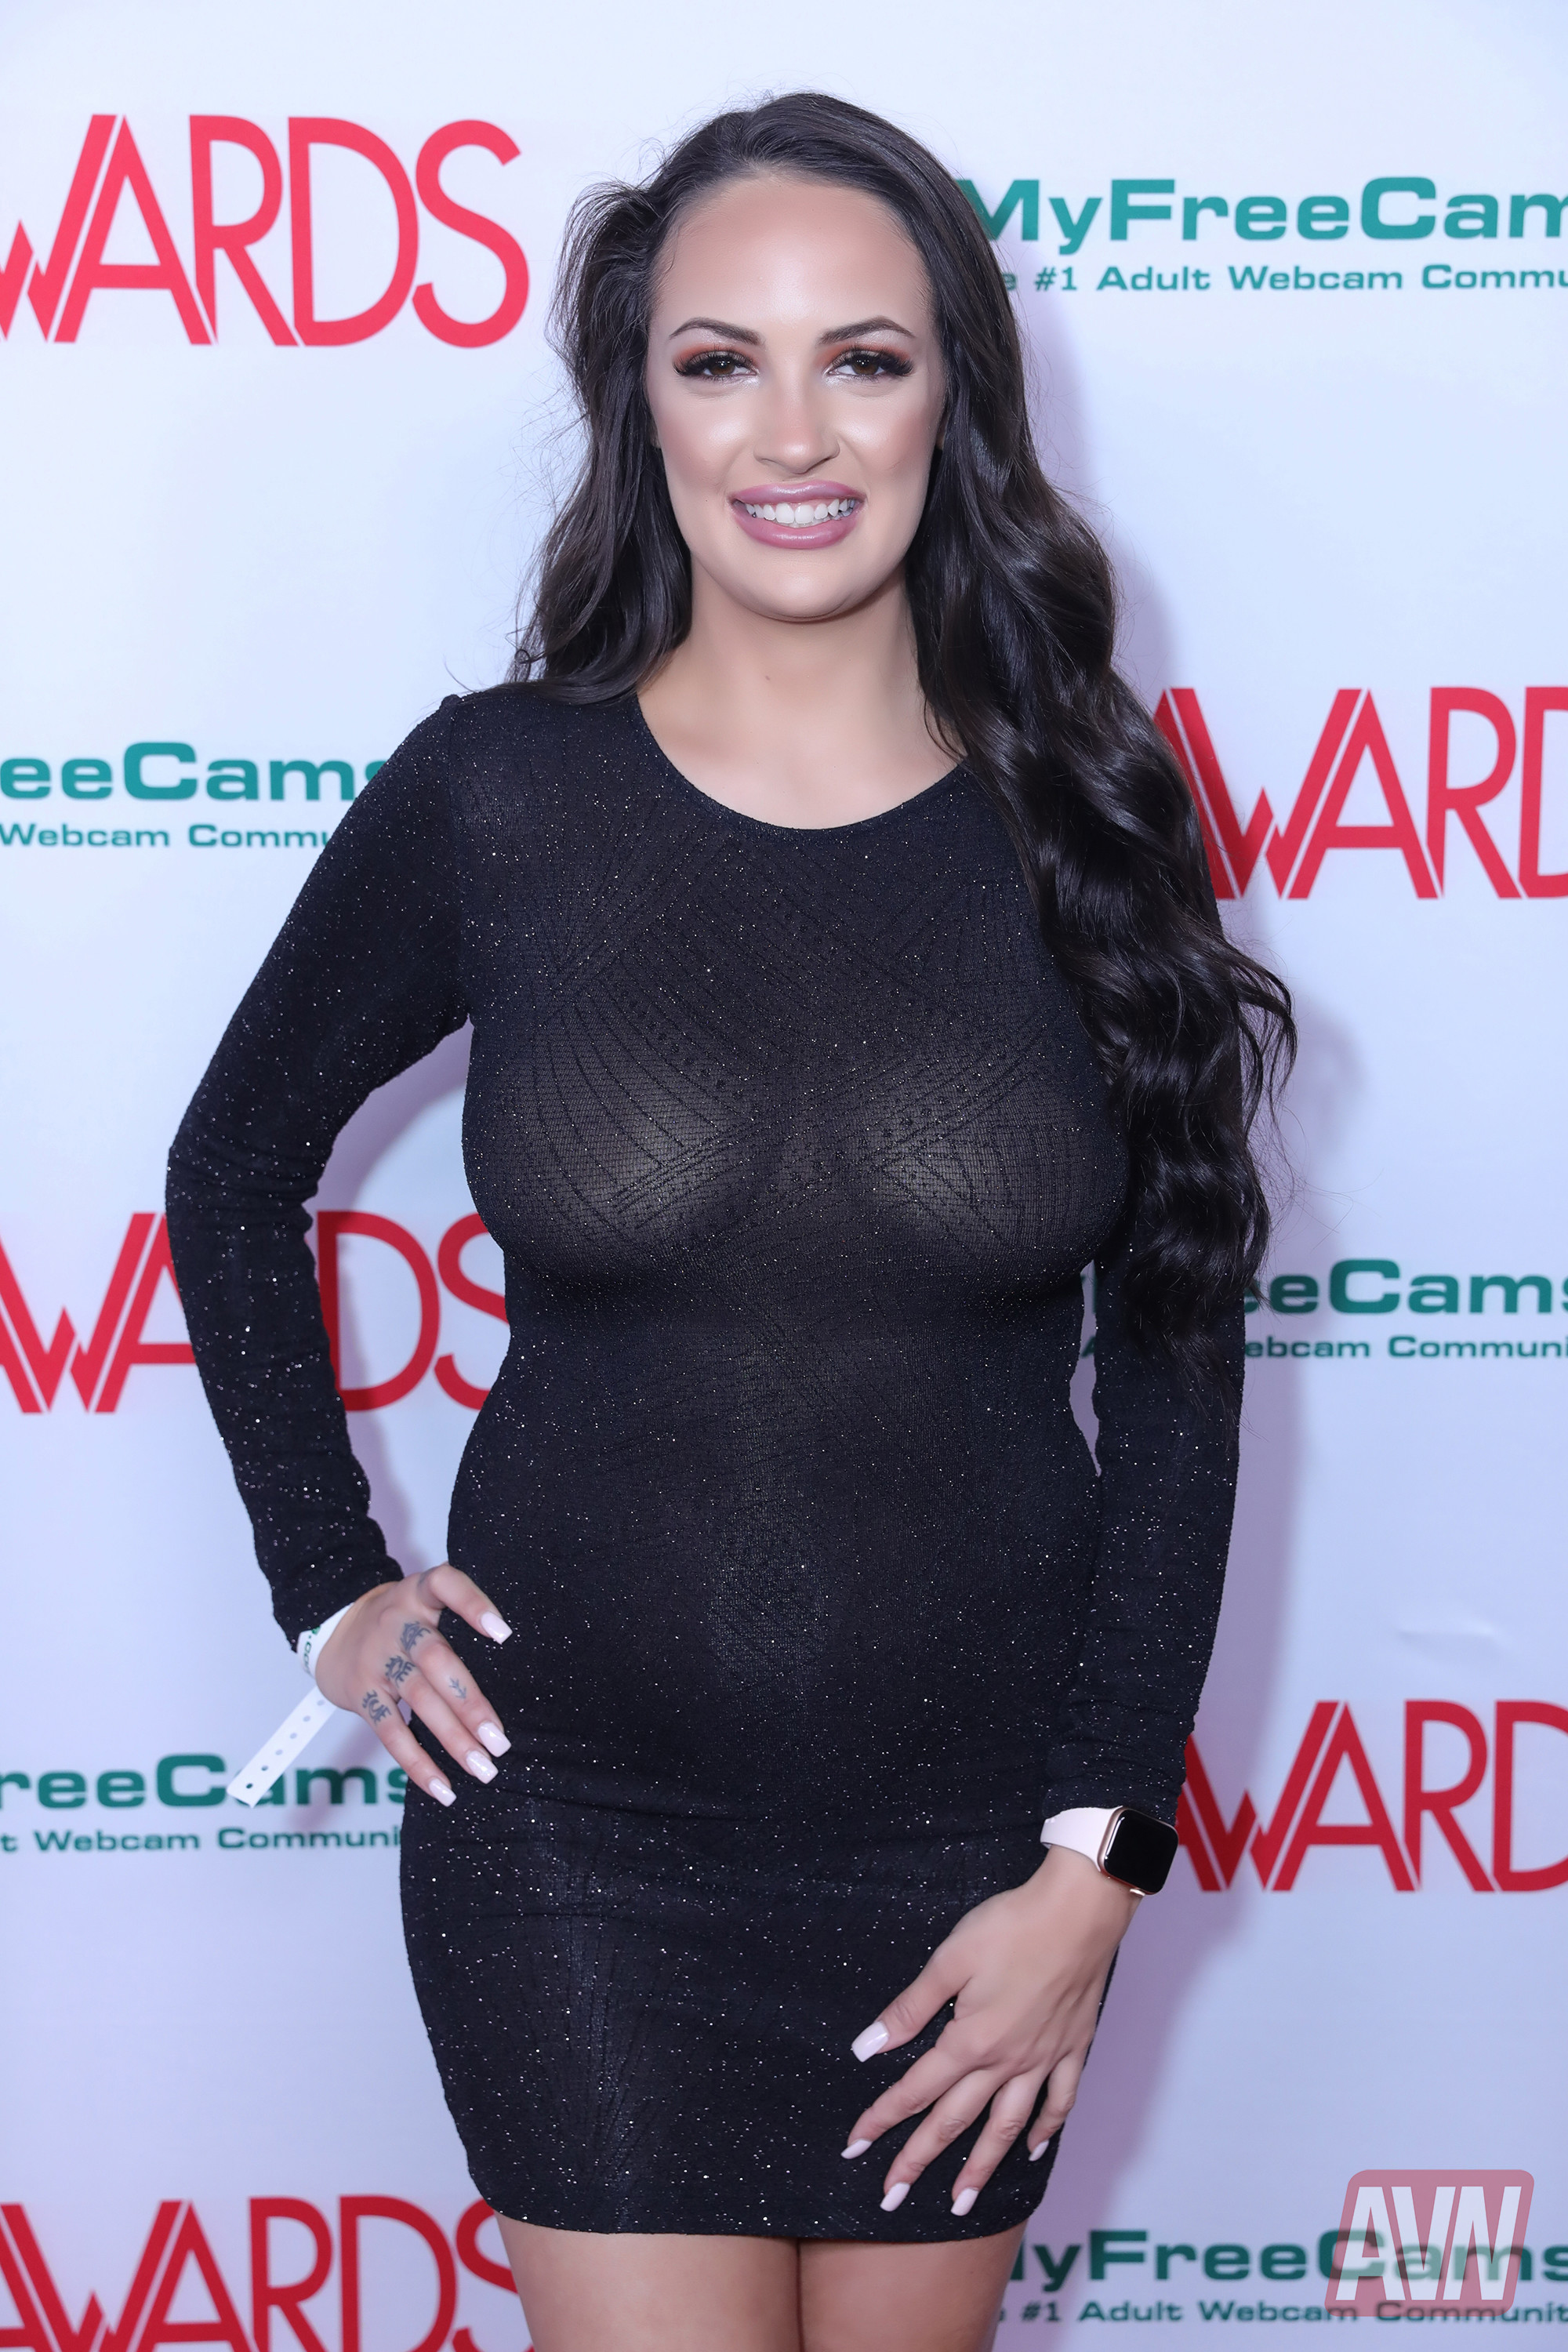 Avn awards sexiest red carpet outfits as virtual ceremony is streamed tonight